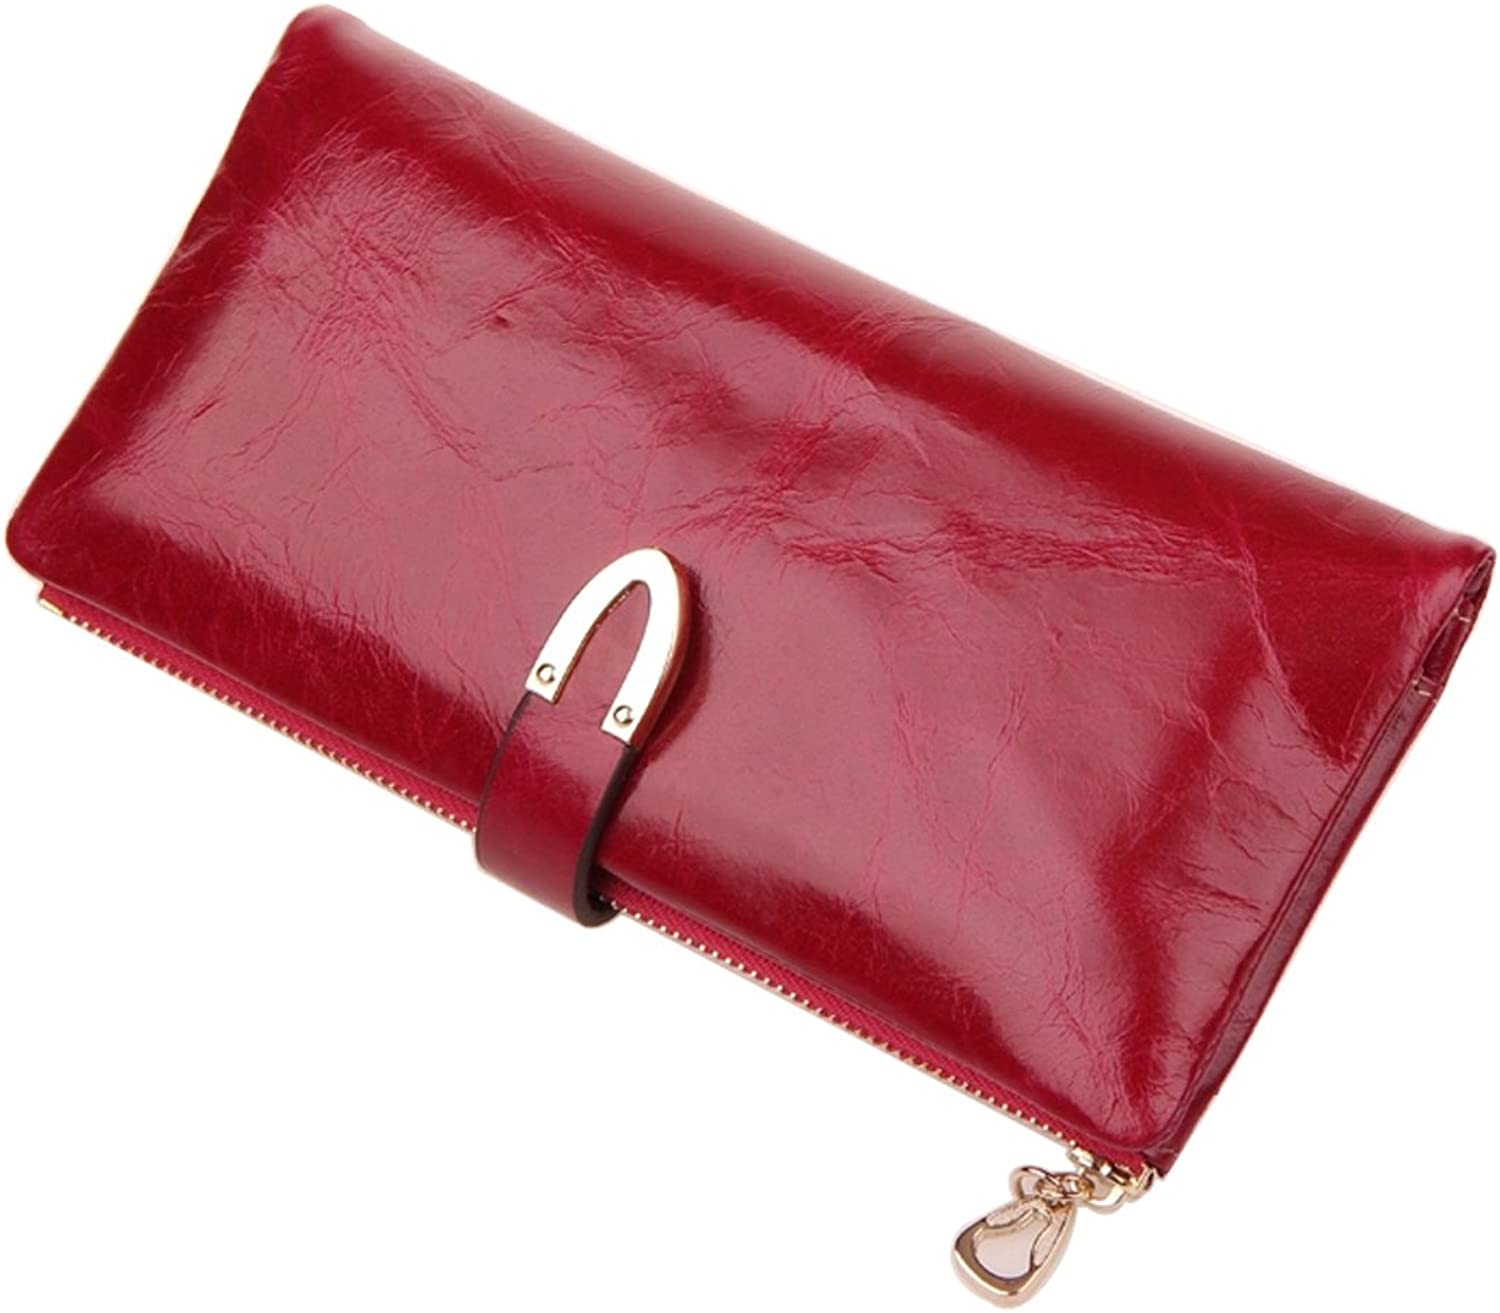 Daiwenwo Women Clutch Long Wallet Leather Coin Purse for Female Cowhide Handbag J31